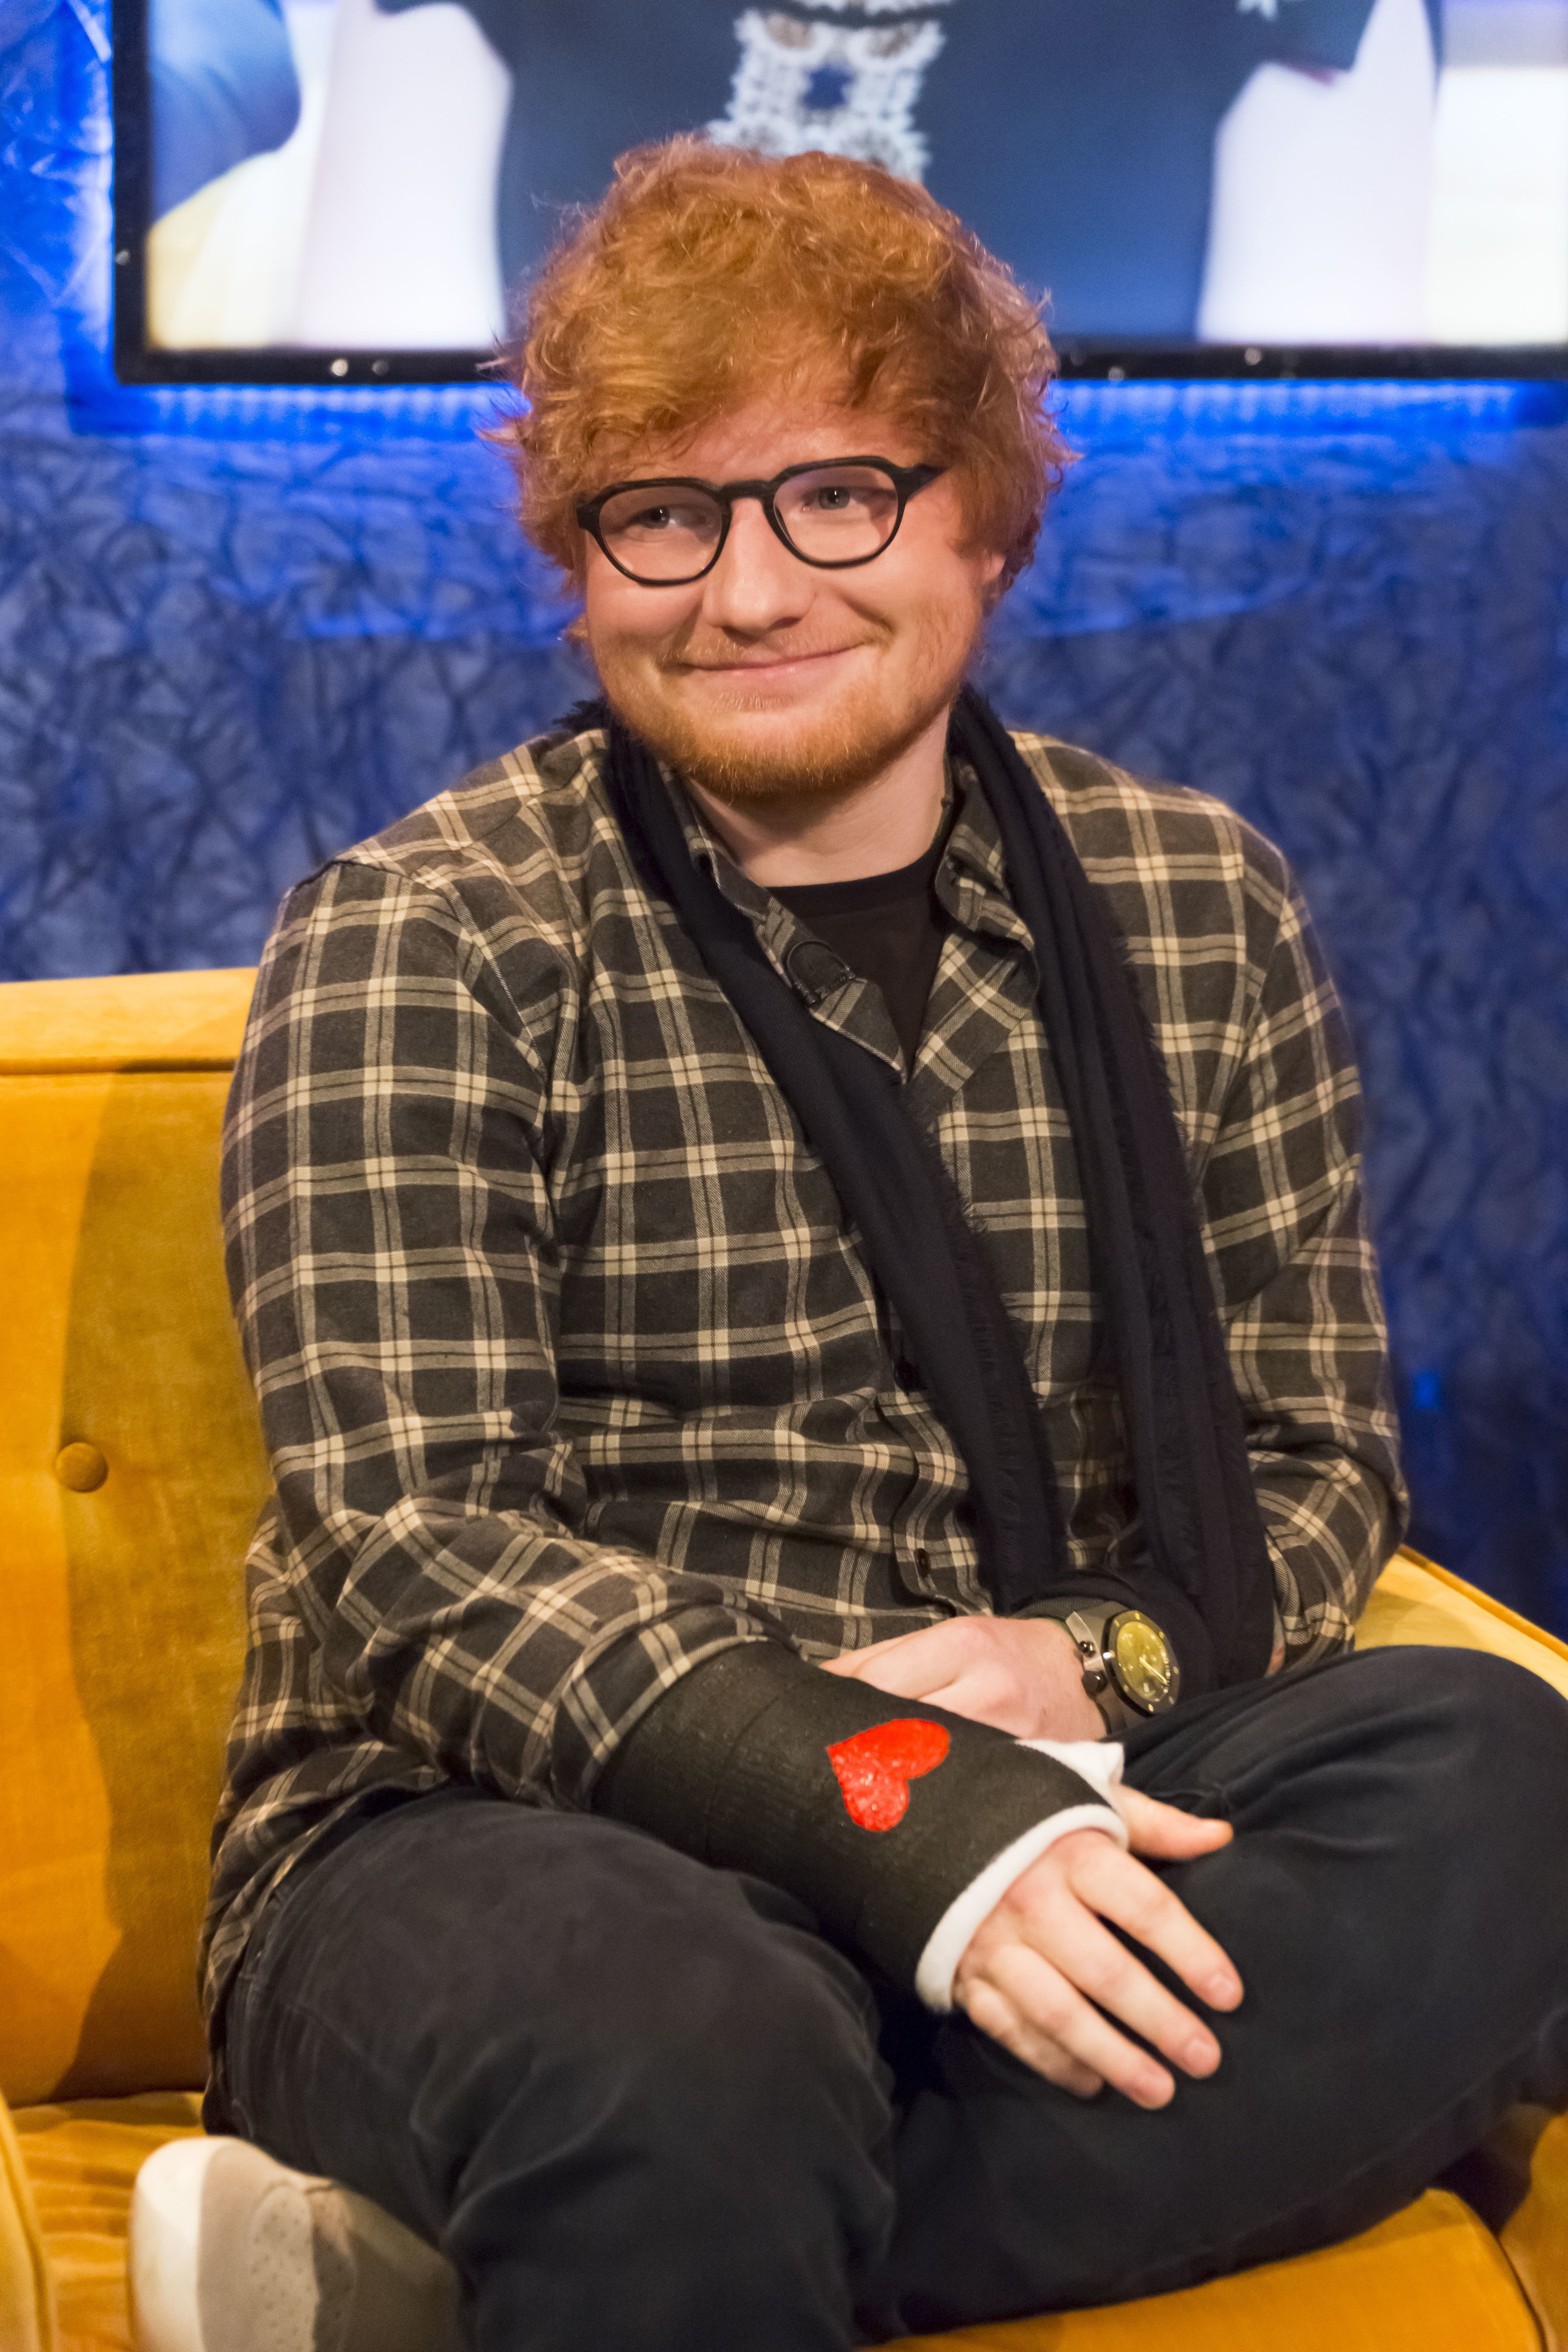 Ed Sheeran Reveals He Took A Year Off After 'Slipping Into Substance Abuse'